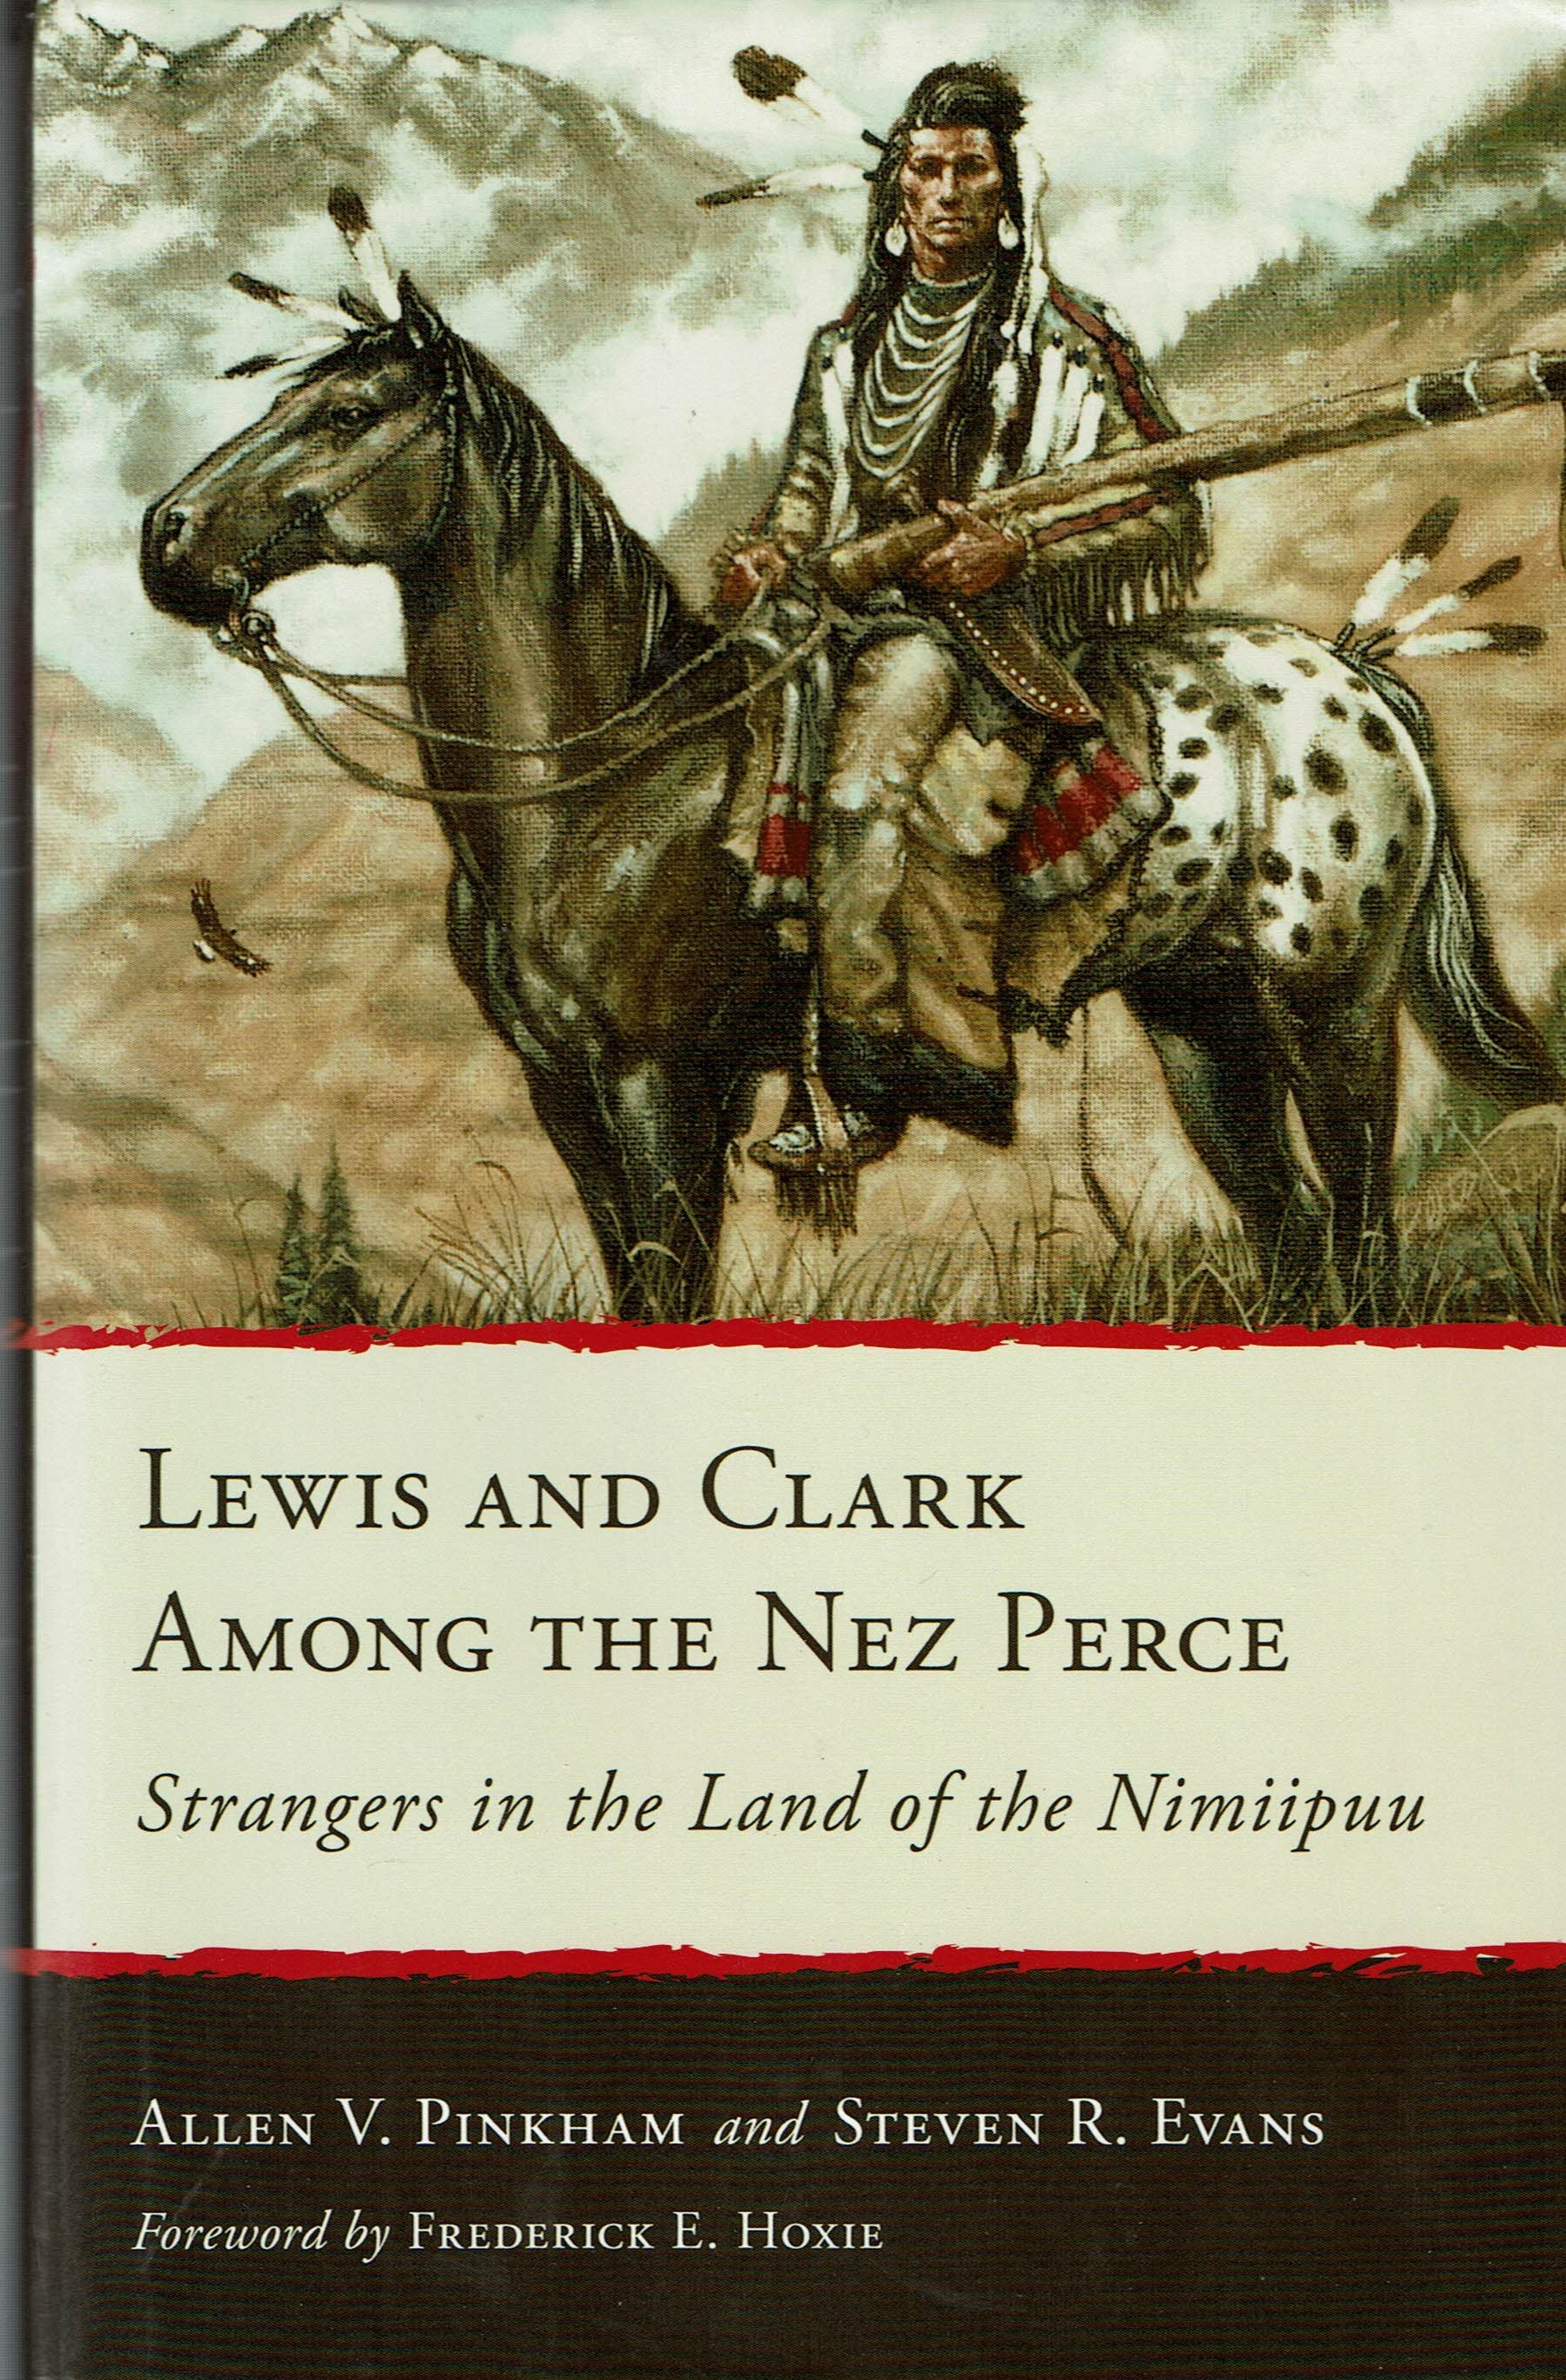 Allen V. Pinkham and Steven R. Evans. LEWIS AND CLARK AMONG THE NEZ PERCE